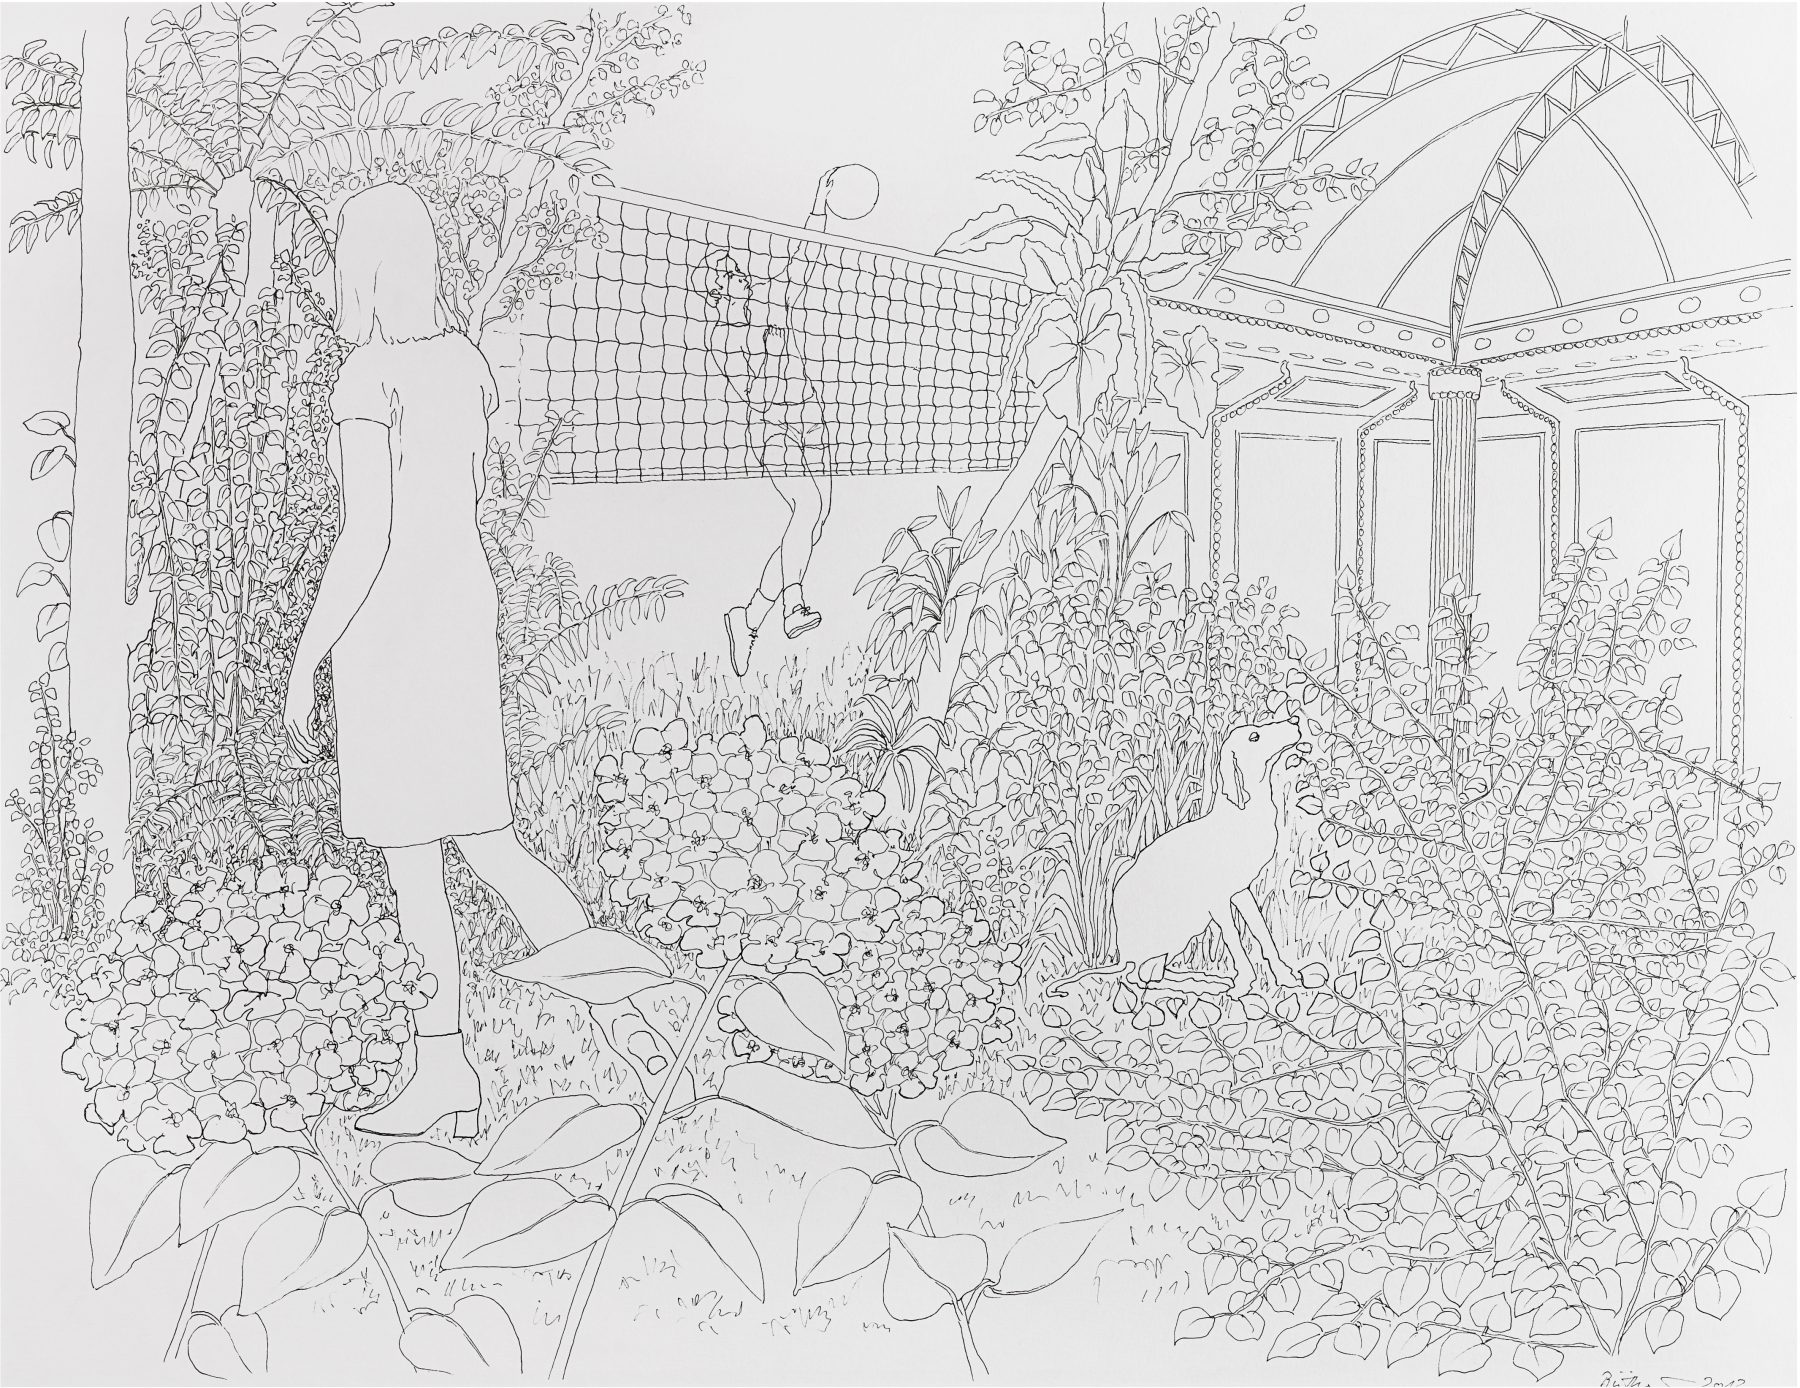 Drawing, Martina Büttner, Lost in paradise 2011